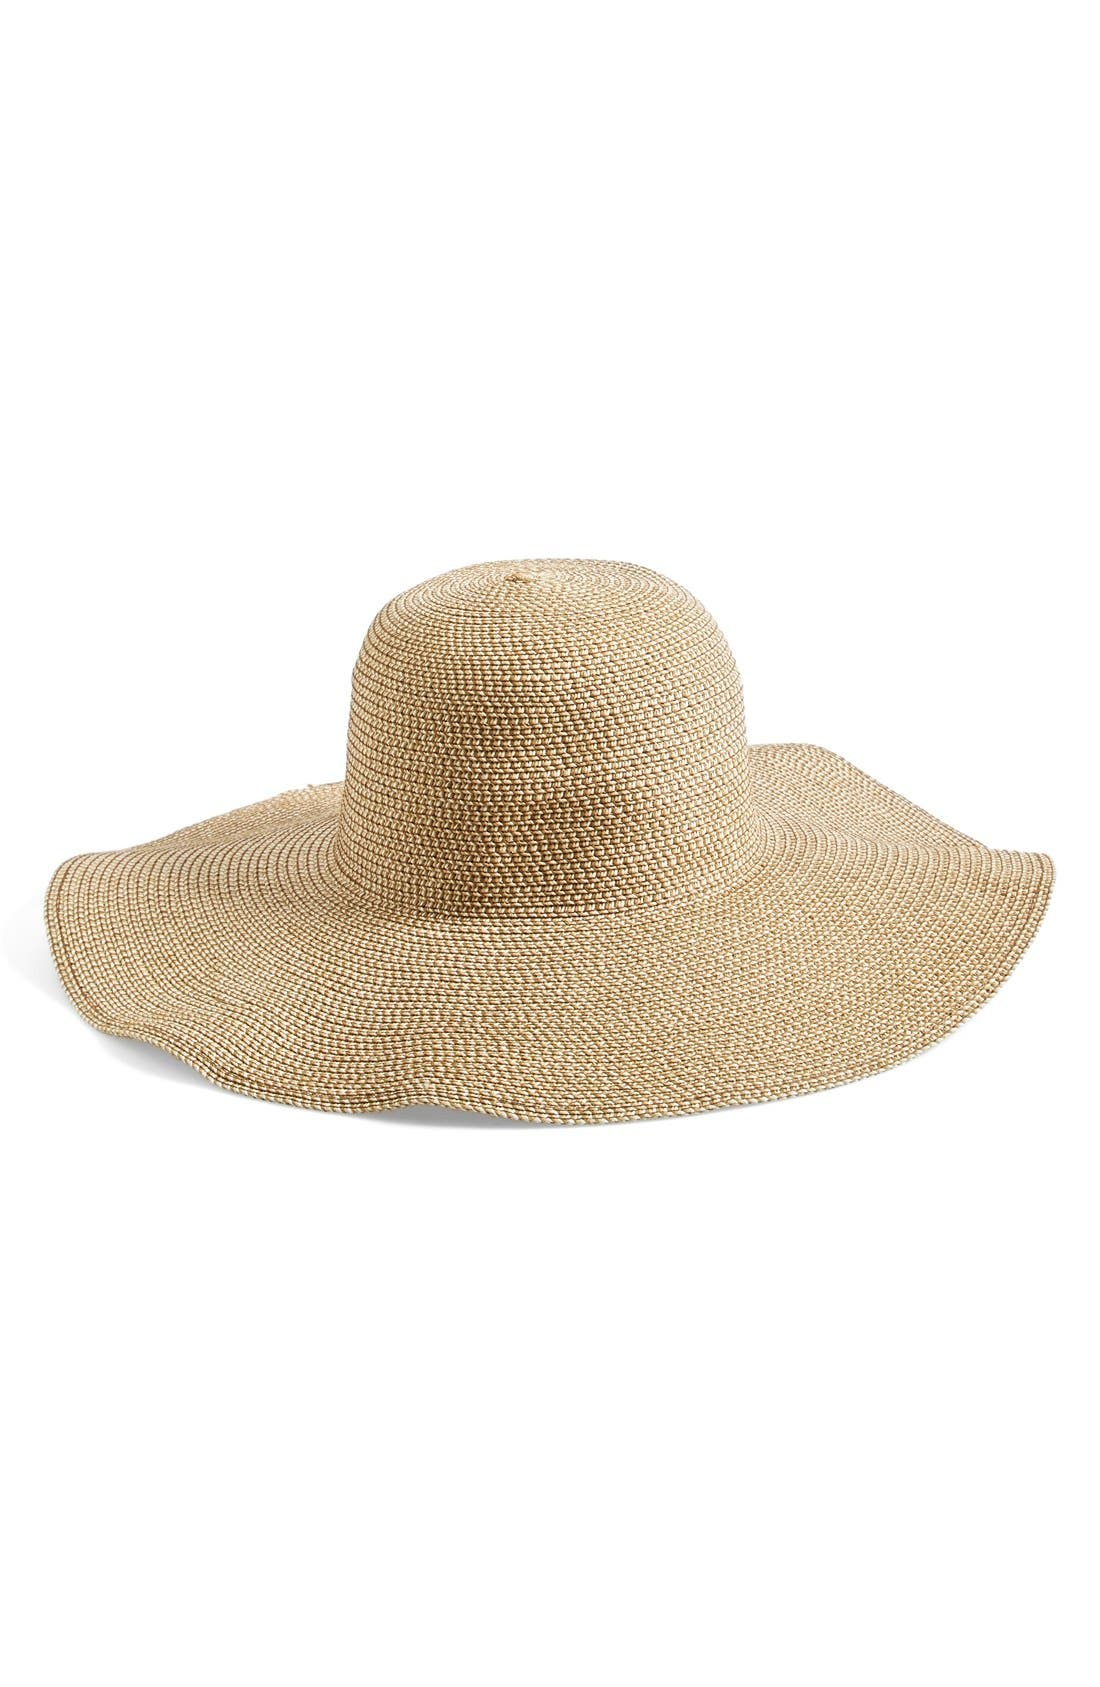 Floppy Straw Look Hat,                             Main thumbnail 1, color,                             Natural